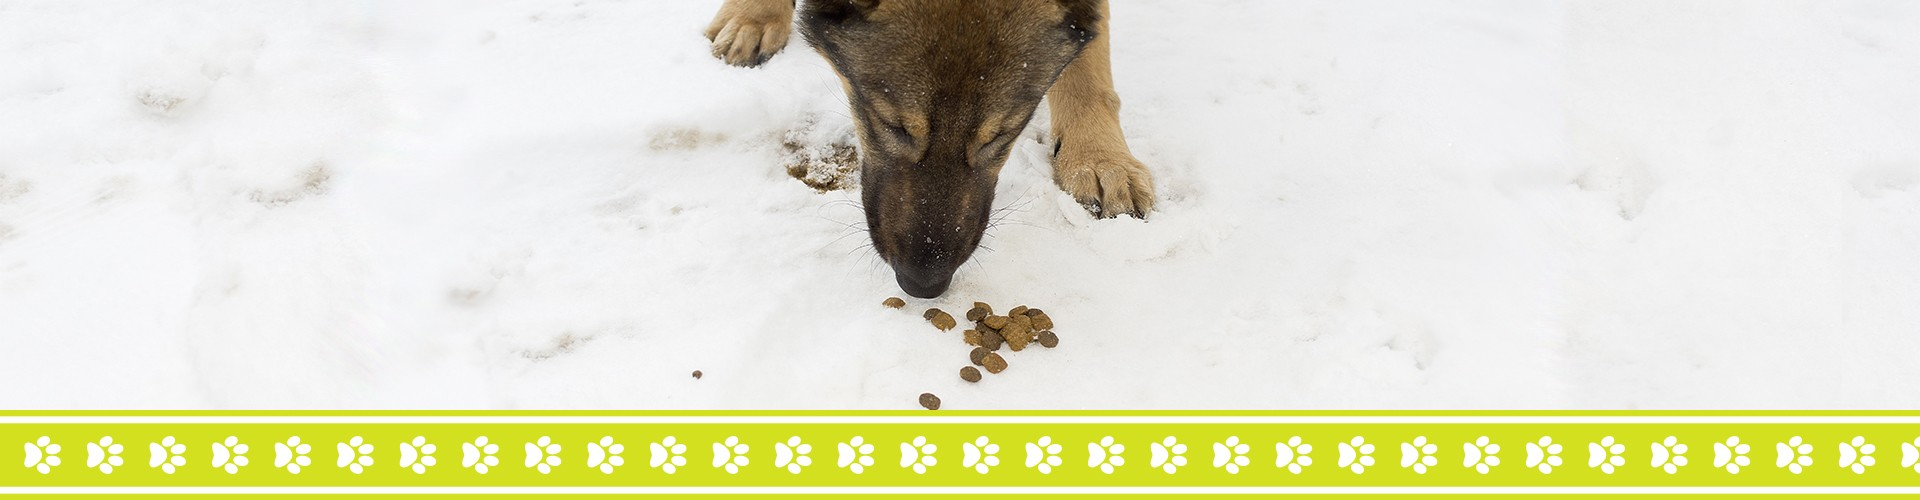 Feeding a dog out in the snow.